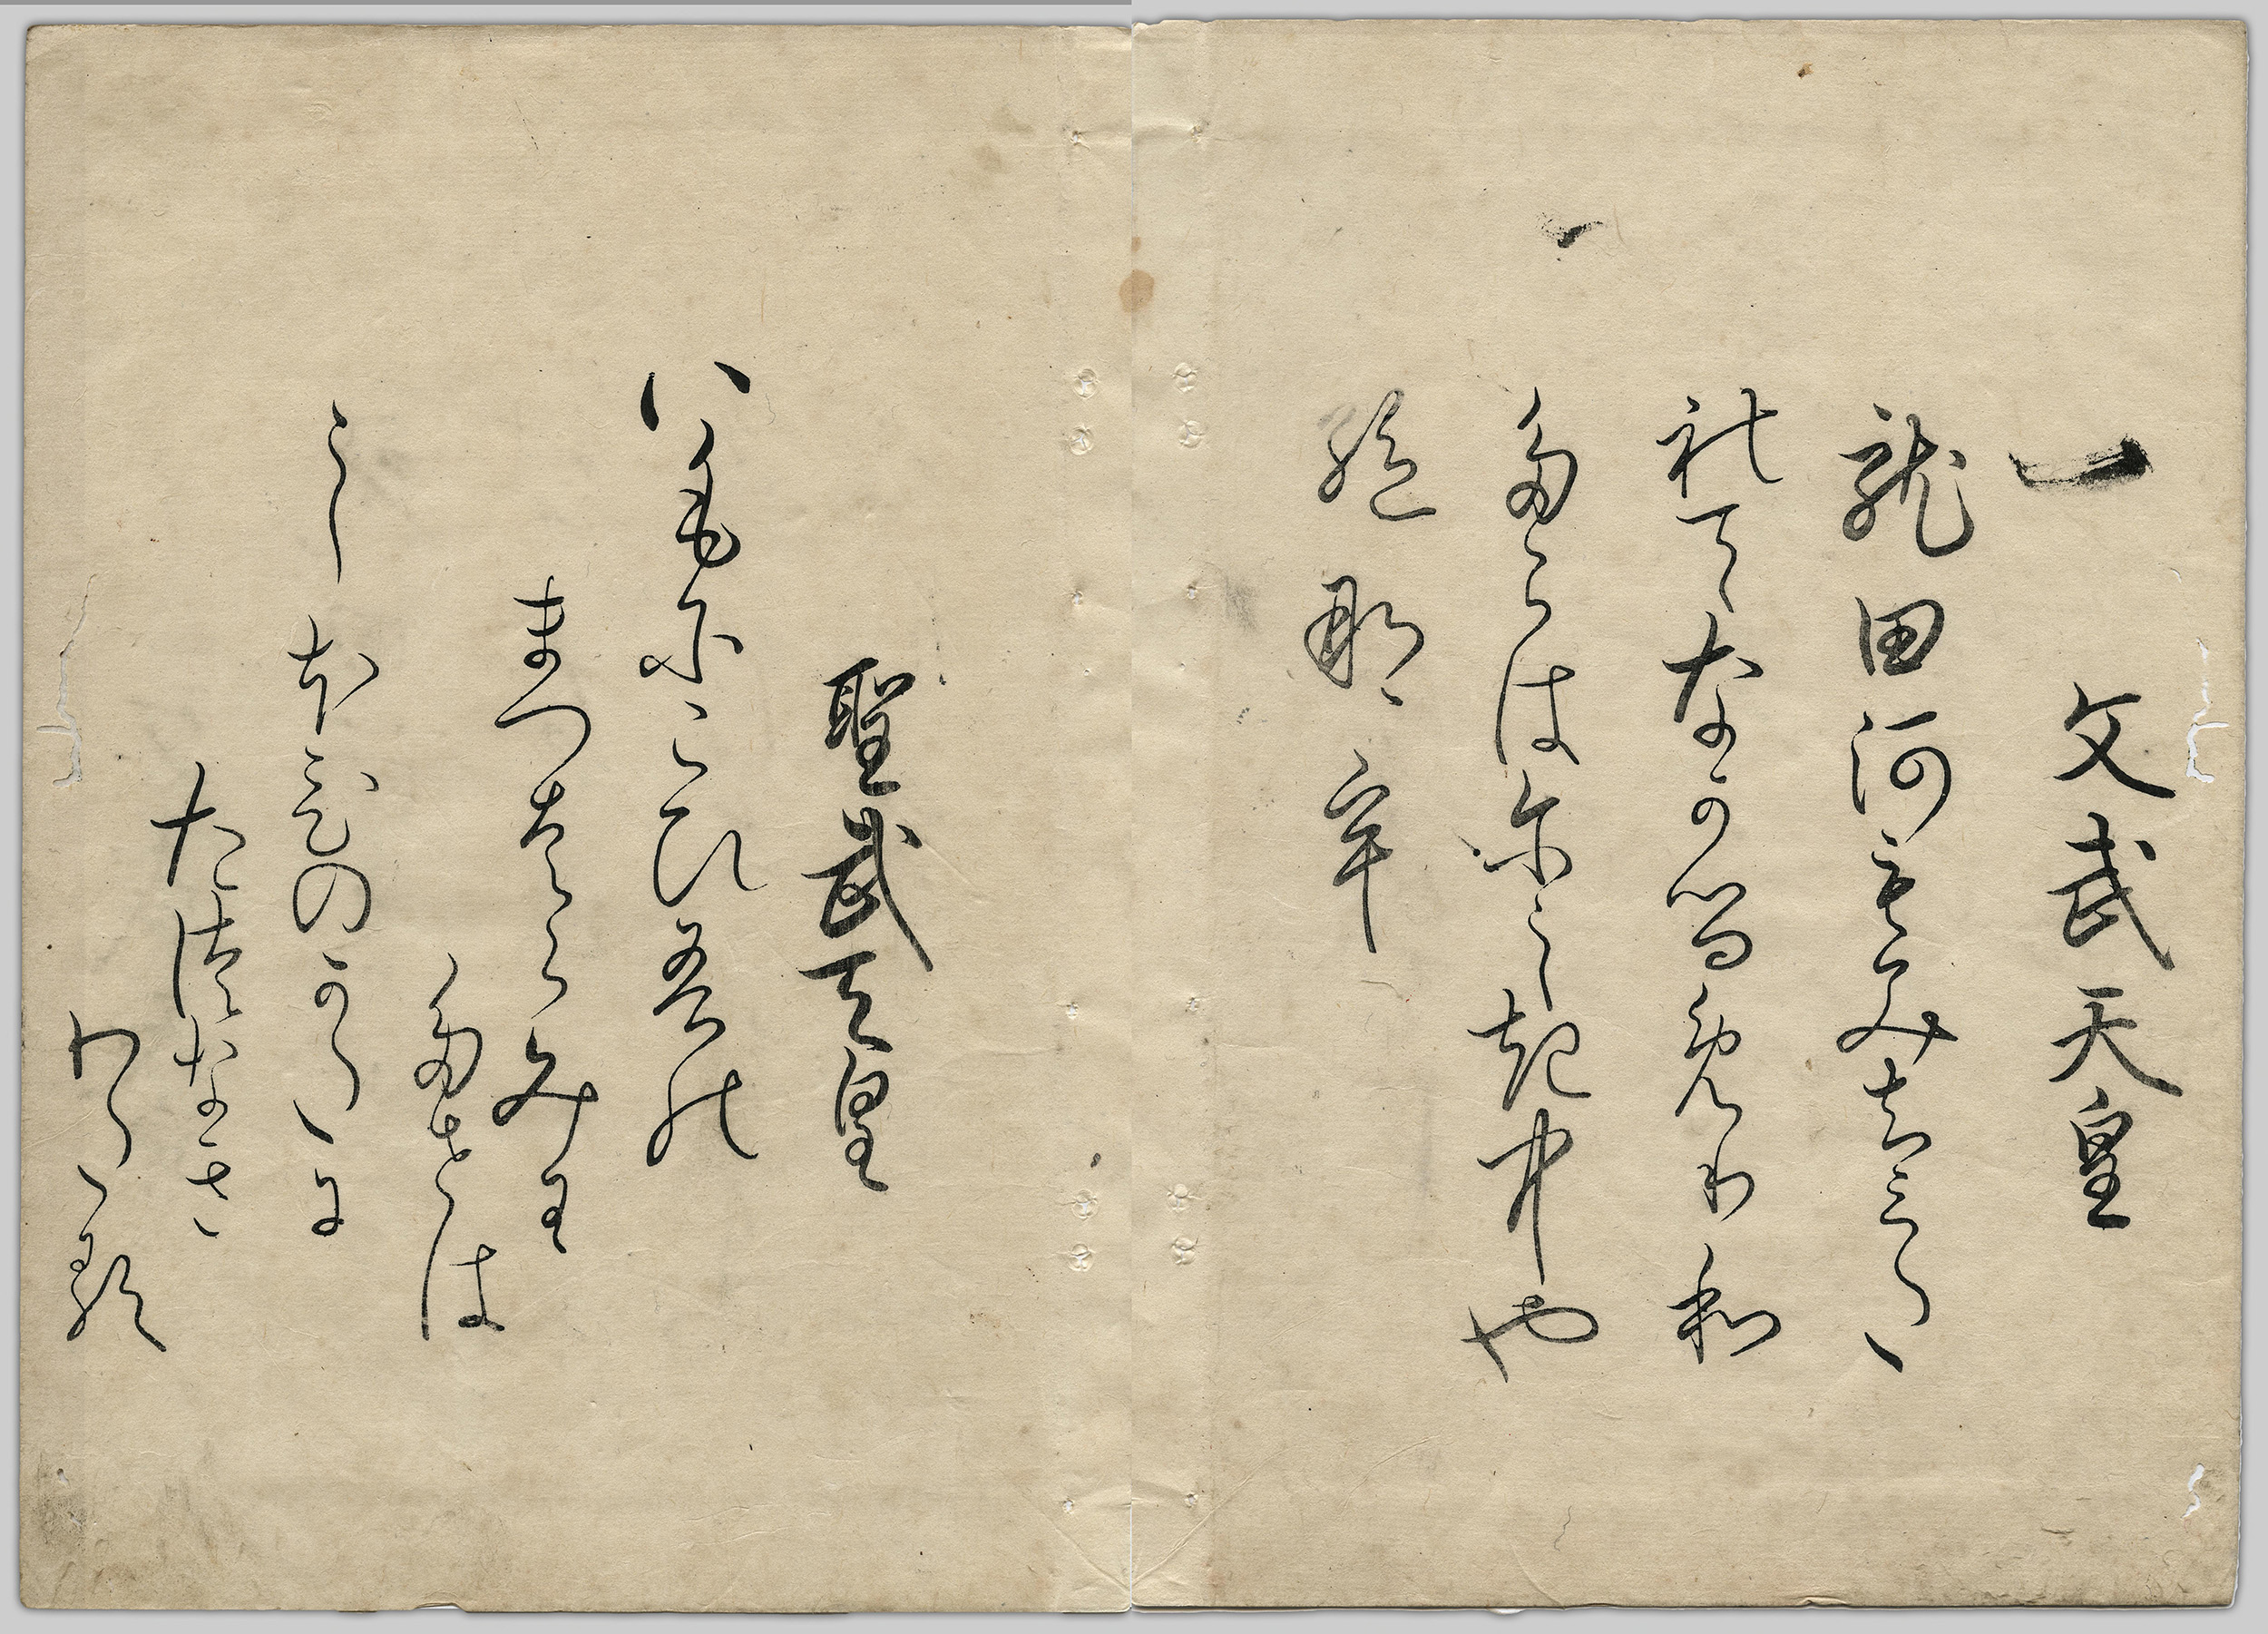 A woodblock-print by the well-known Edo-period literatus Tachibana Chikage, dated 1837.